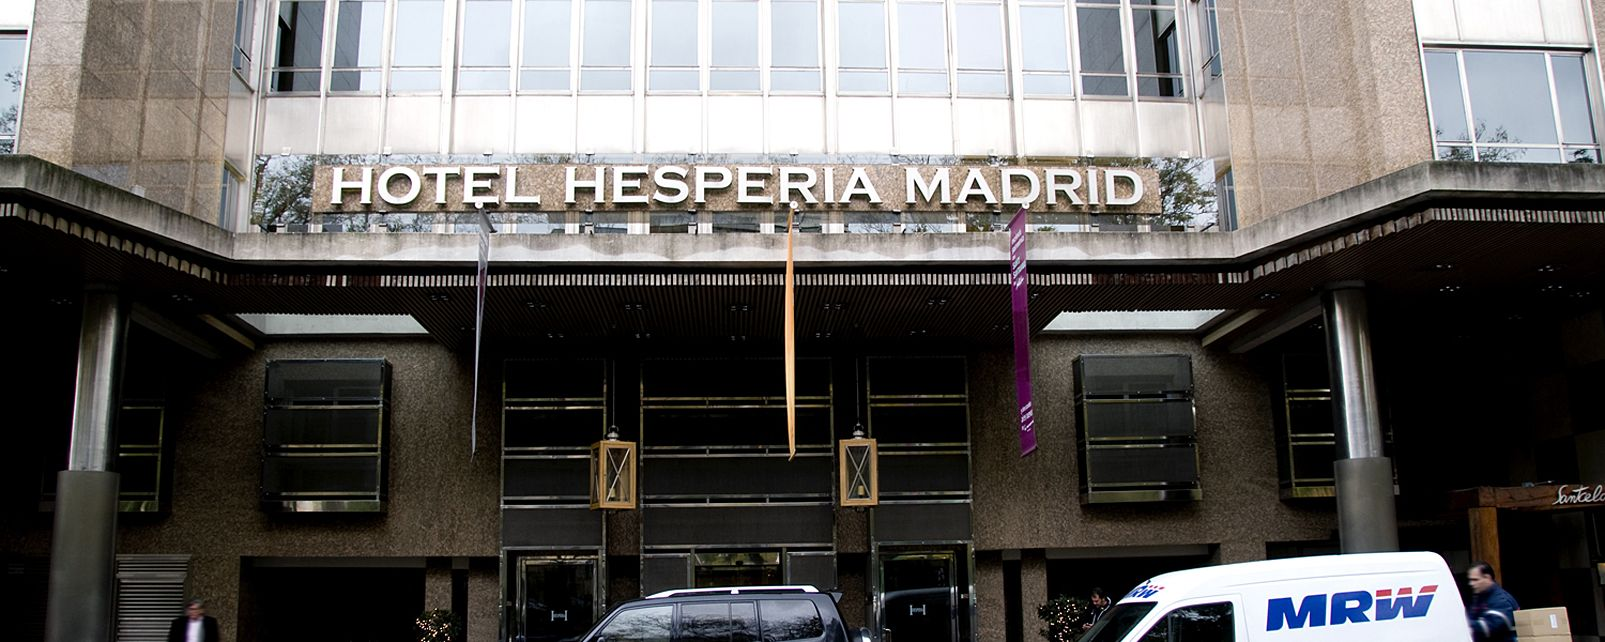 Hotel NH Hesperia Madrid